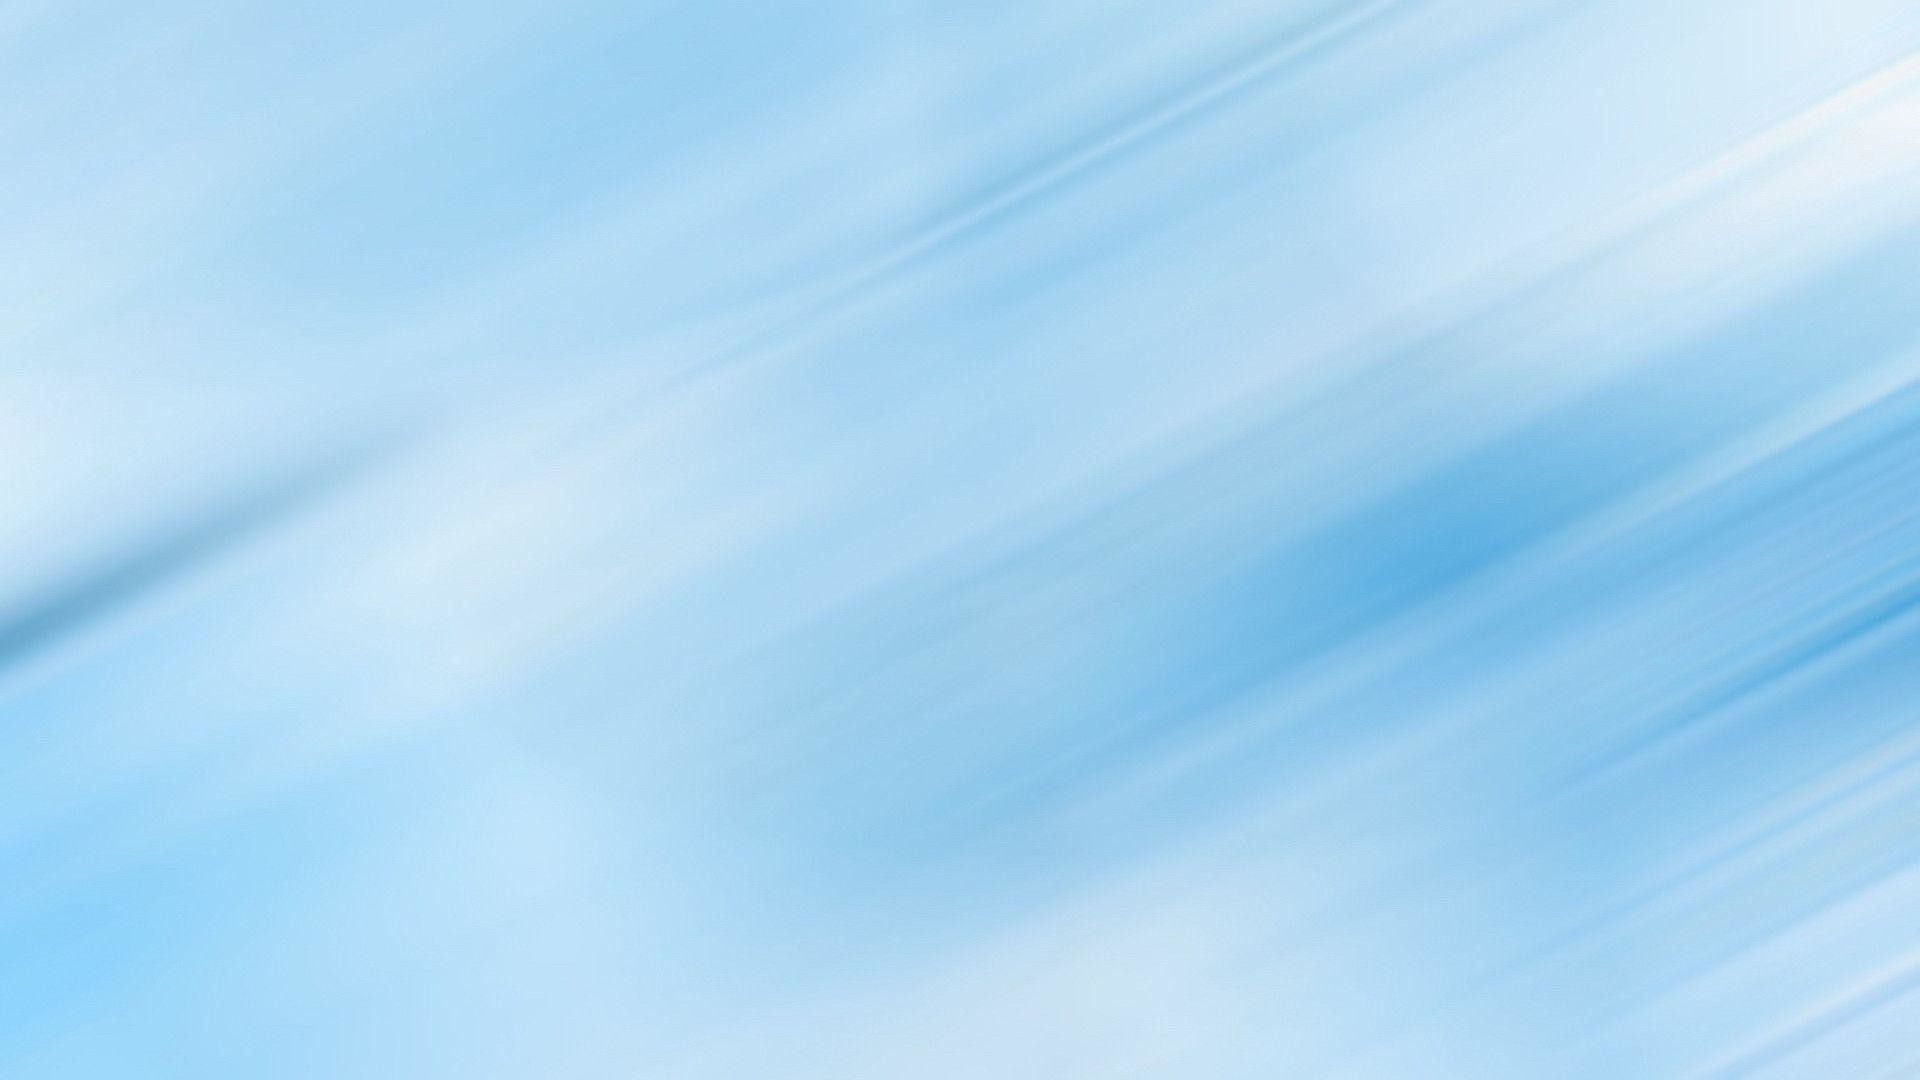 Pastel Blue Aesthetic Wallpaper Laptop